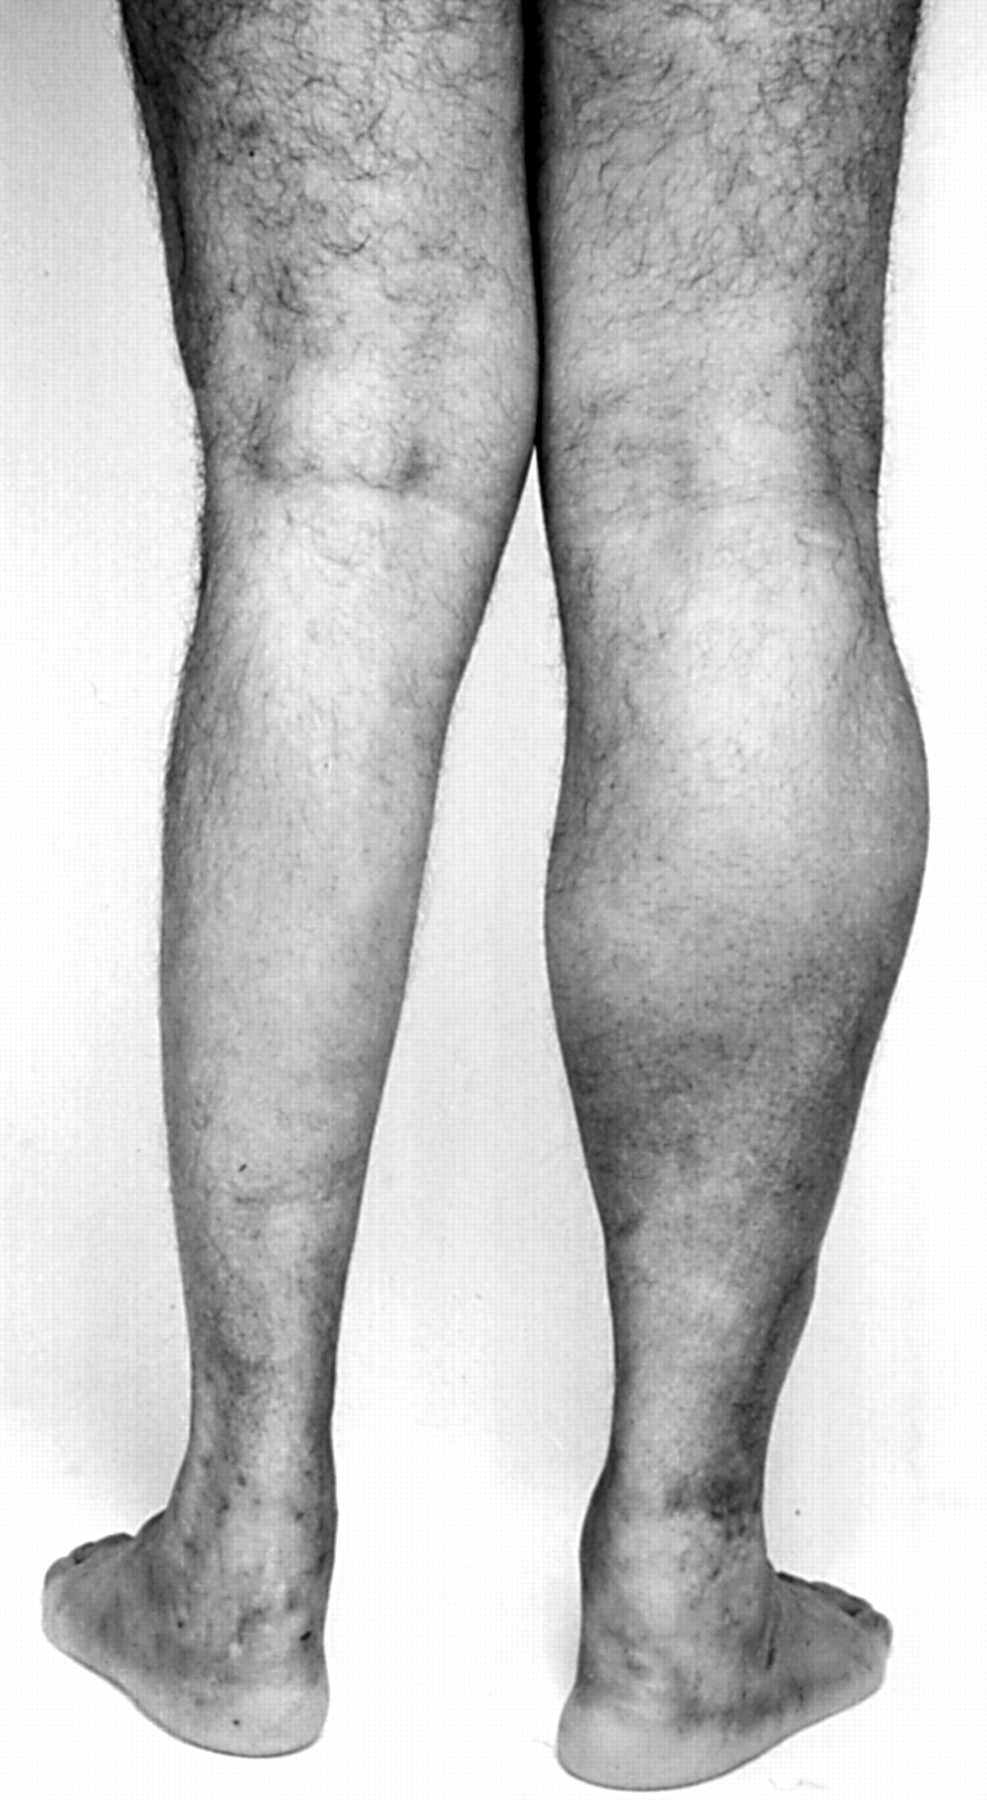 No muscle growth disease